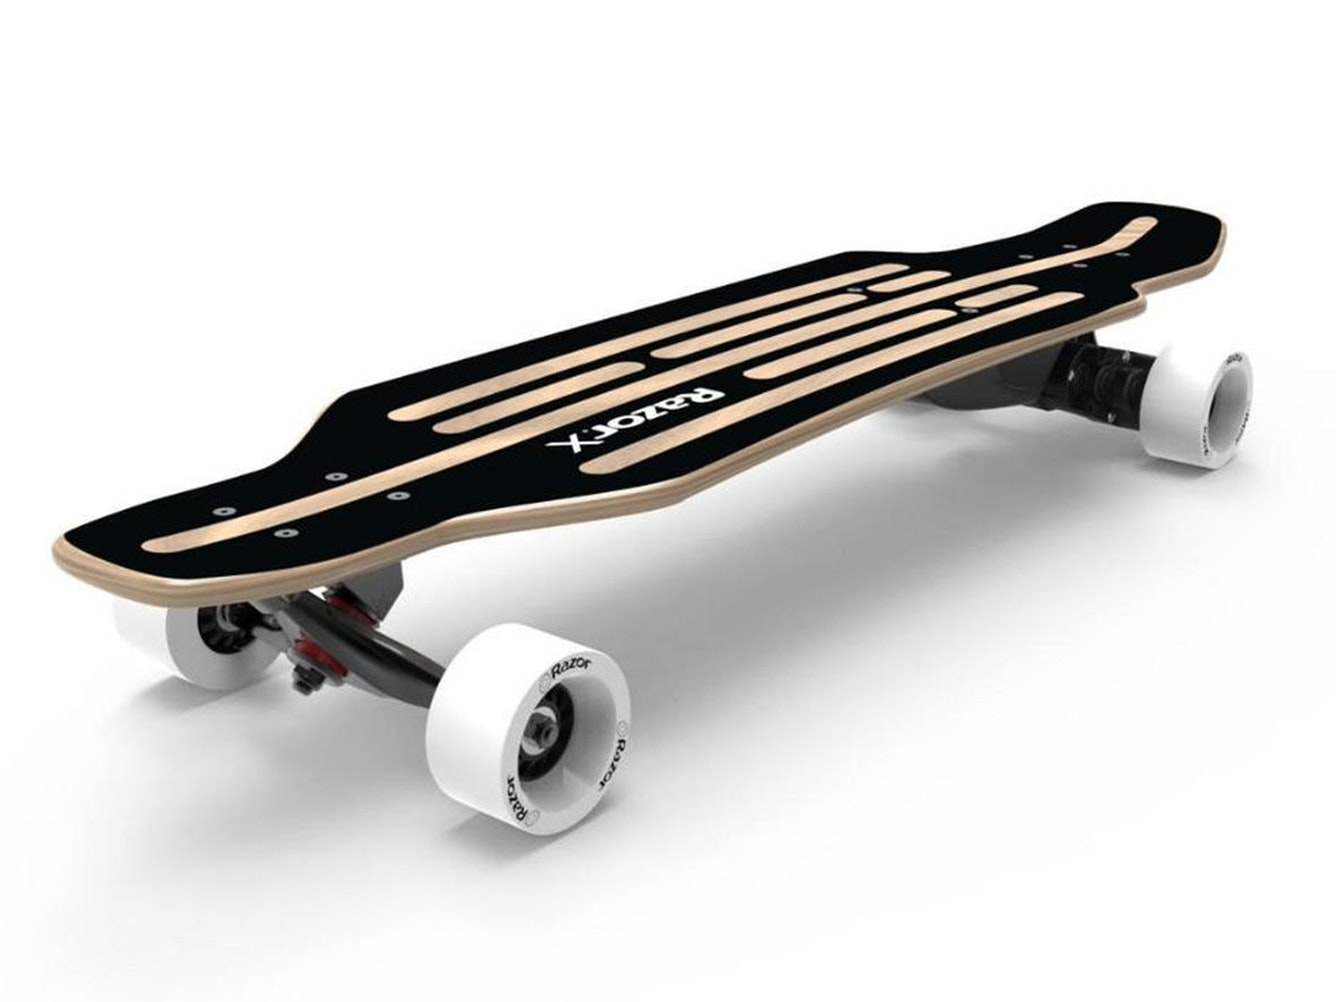 1d855bcd5b8 RazorX Longboard Electric Skateboard - Skateboards   Hoverboards - Bikes    Trikes - Sports   Outdoors - Home   Outdoor Living Trade Tested